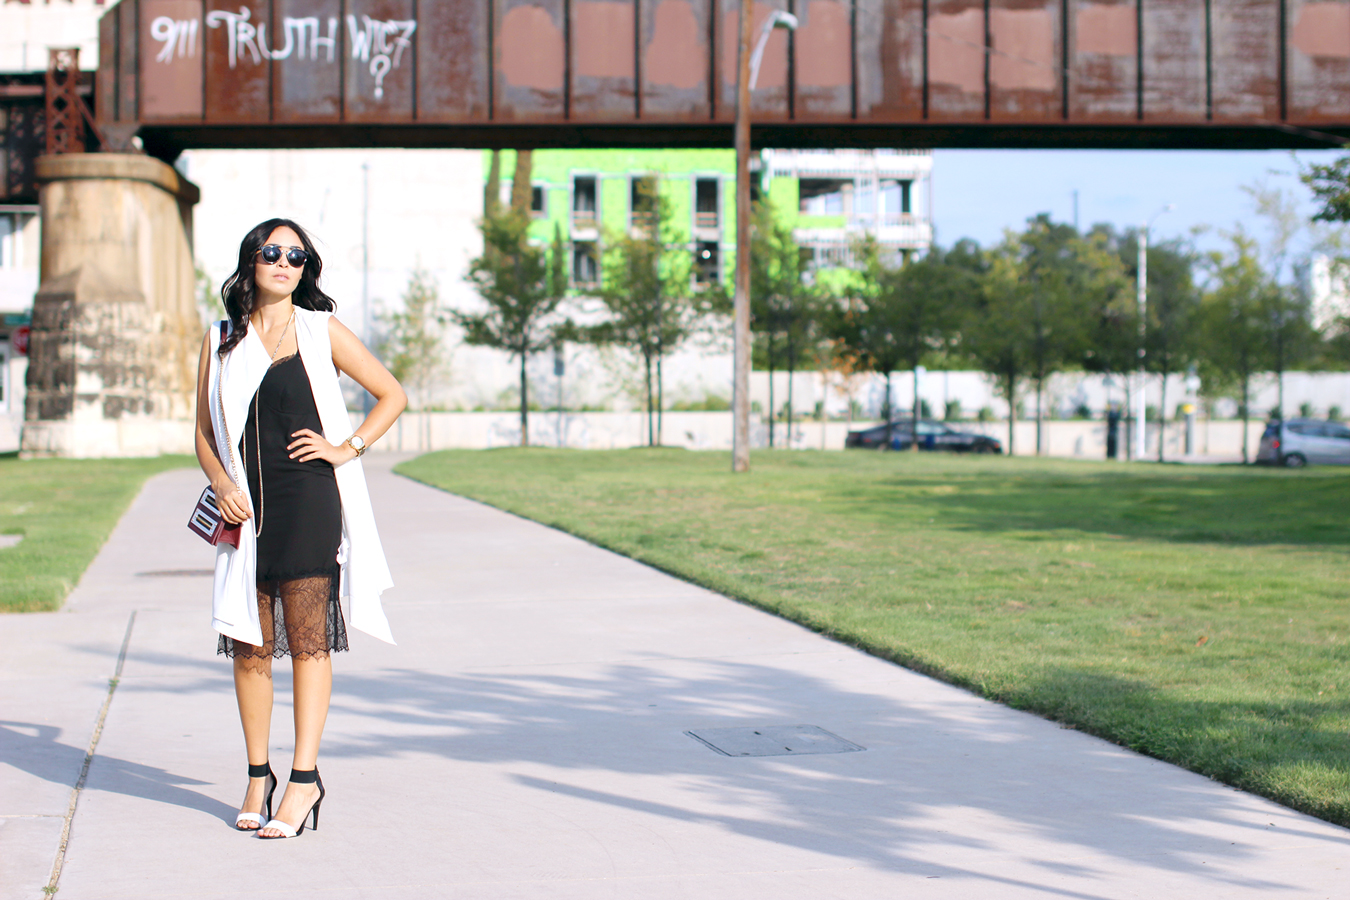 FIXIN-TO-THRILL-SLIP-DRESS-LONGLINE-VEST-BLACK-WHITE-FALL-ATX-AUSTIN-STYLE-BLOG-SHIRTS-COLORS-TRENDS-FW15-TRENDY-CHIC-GLAM-FASHION-TEXAS-5